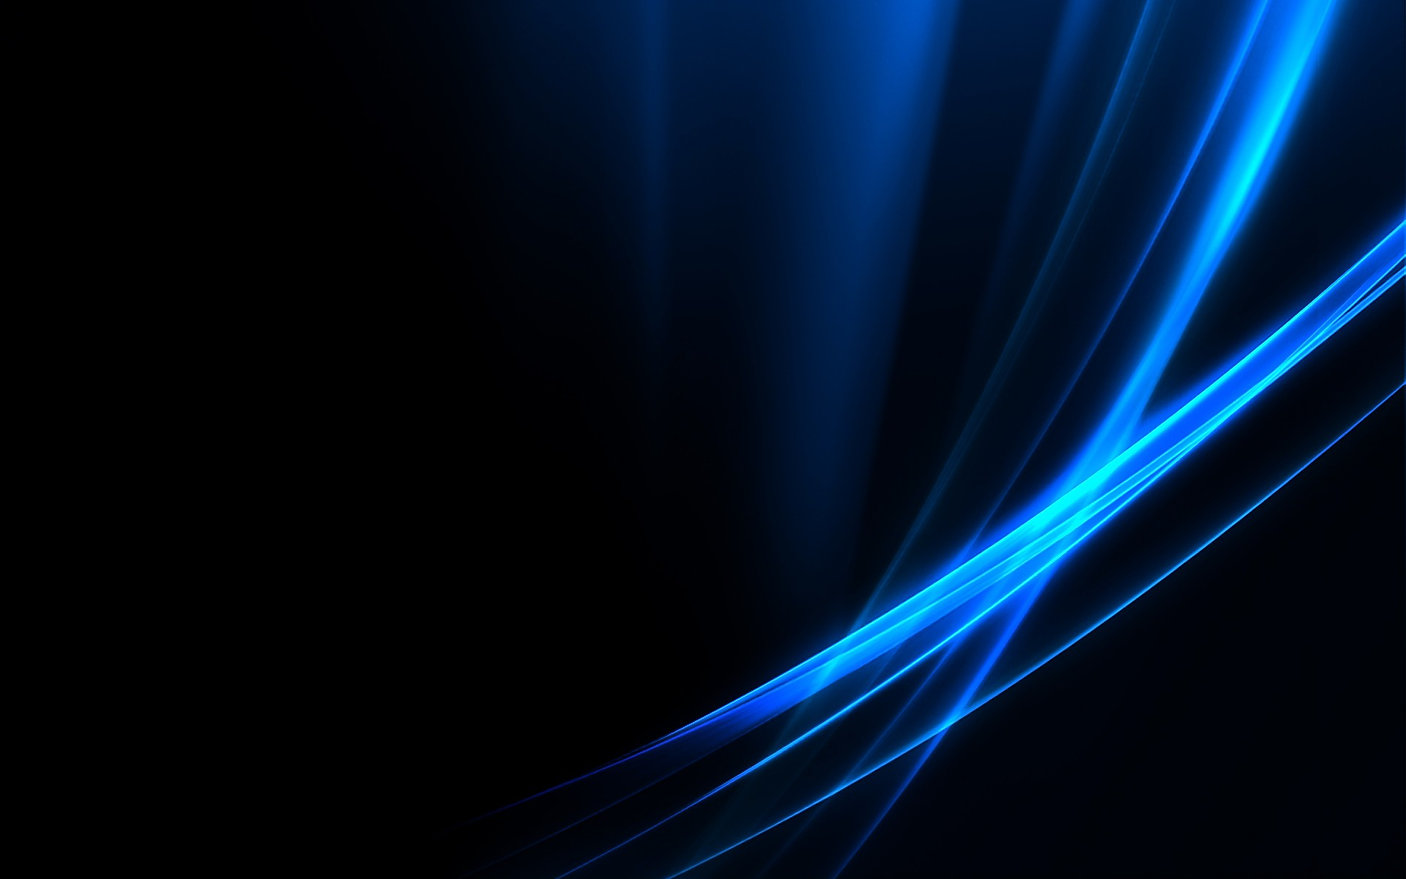 black-and-blue-wide-hd-wallpaper-downloa